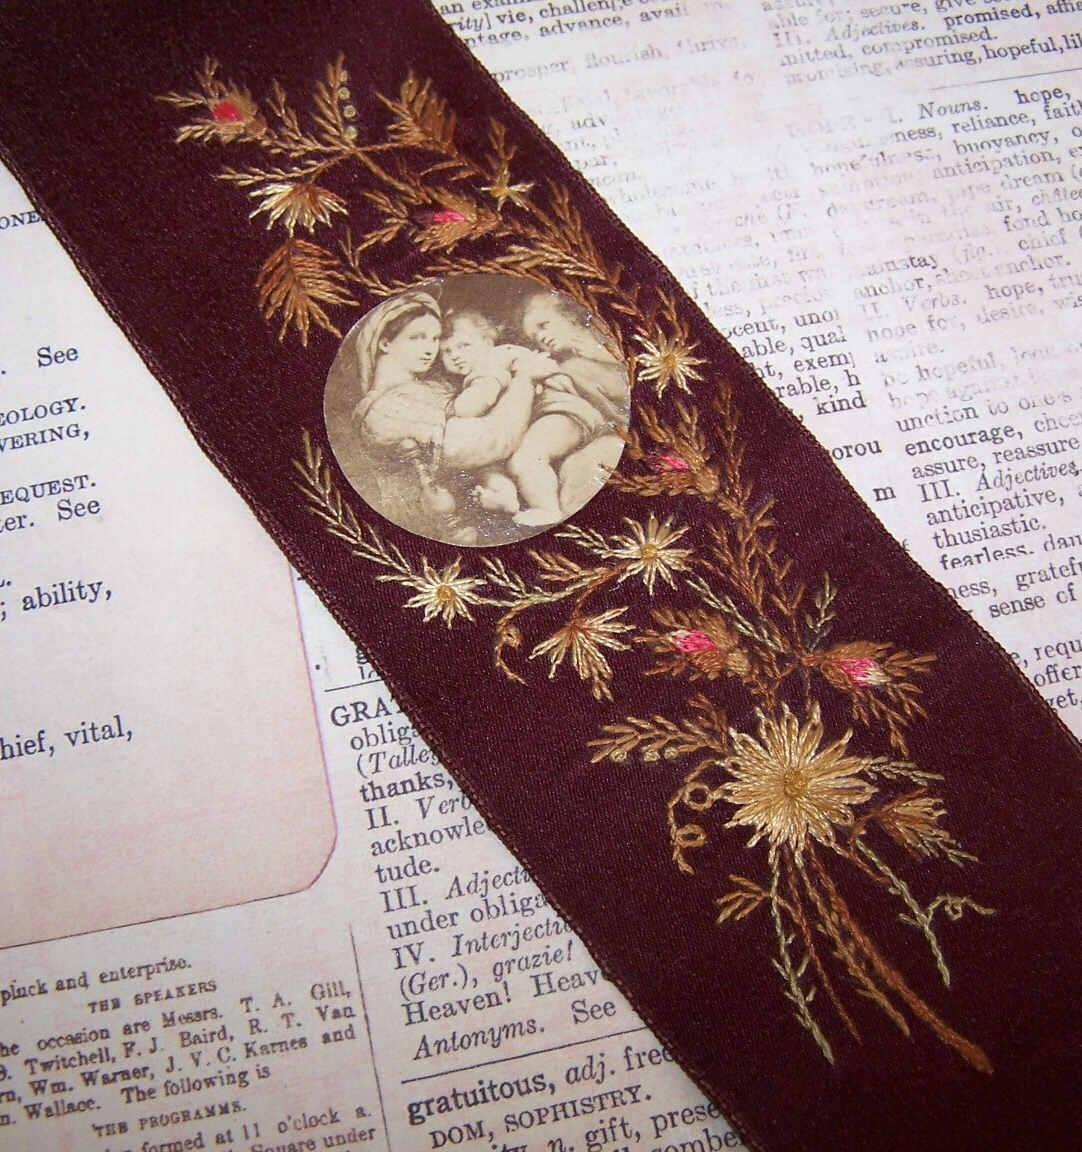 VICTORIAN Religious Bookmark - Burgundy Silk, Embroidery & Image of Madonna and Child!